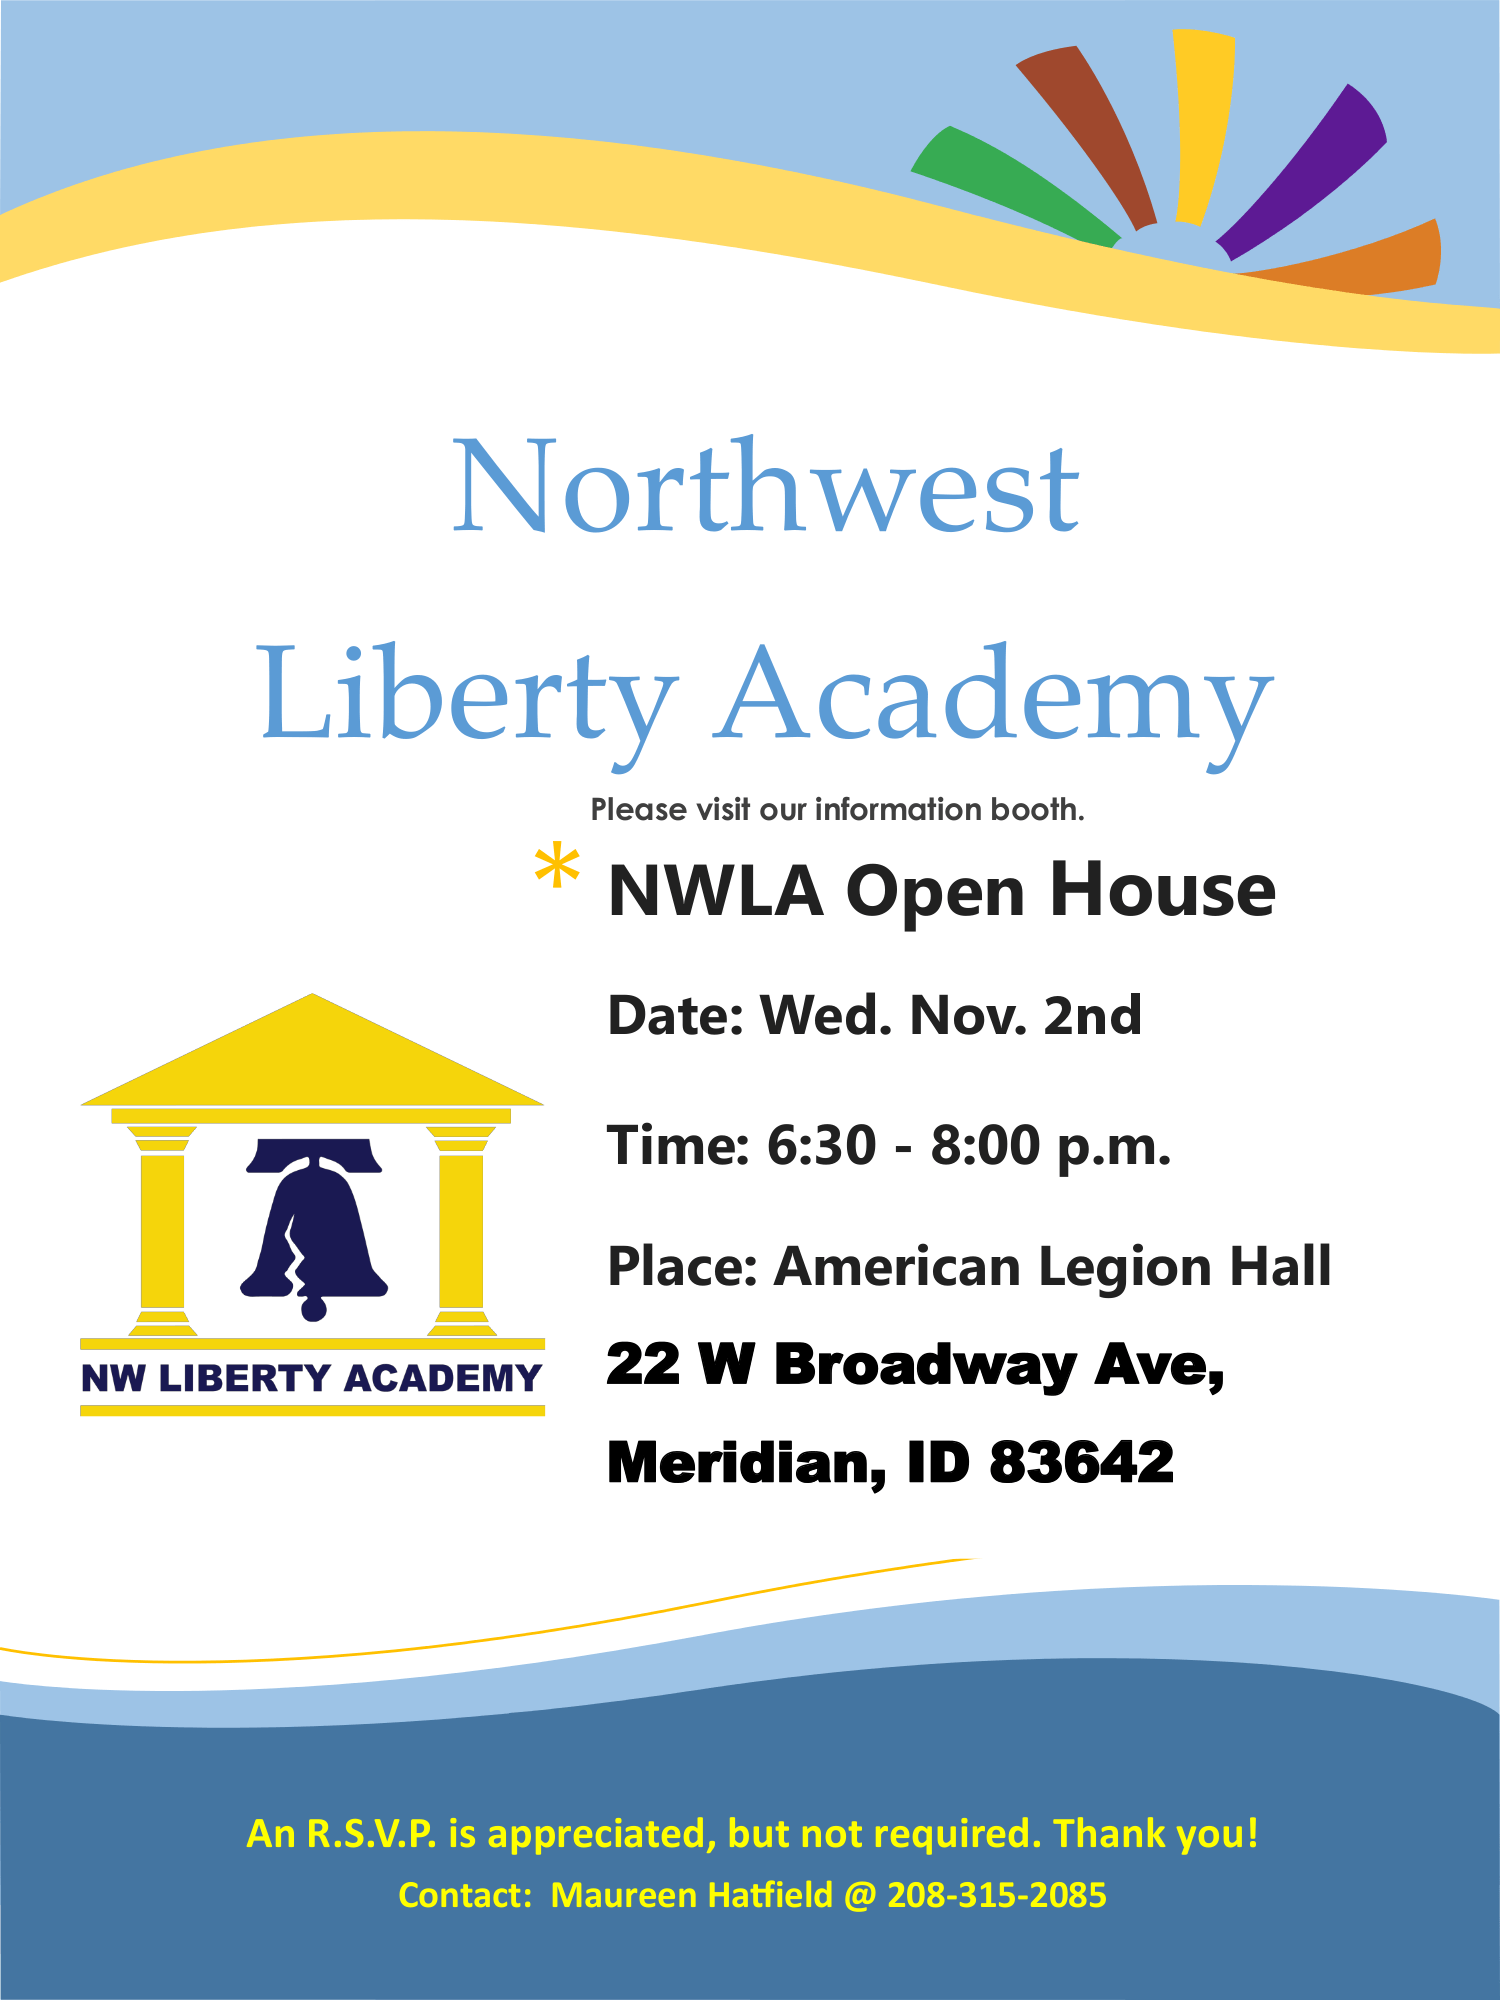 nwla_open_house_nov_2